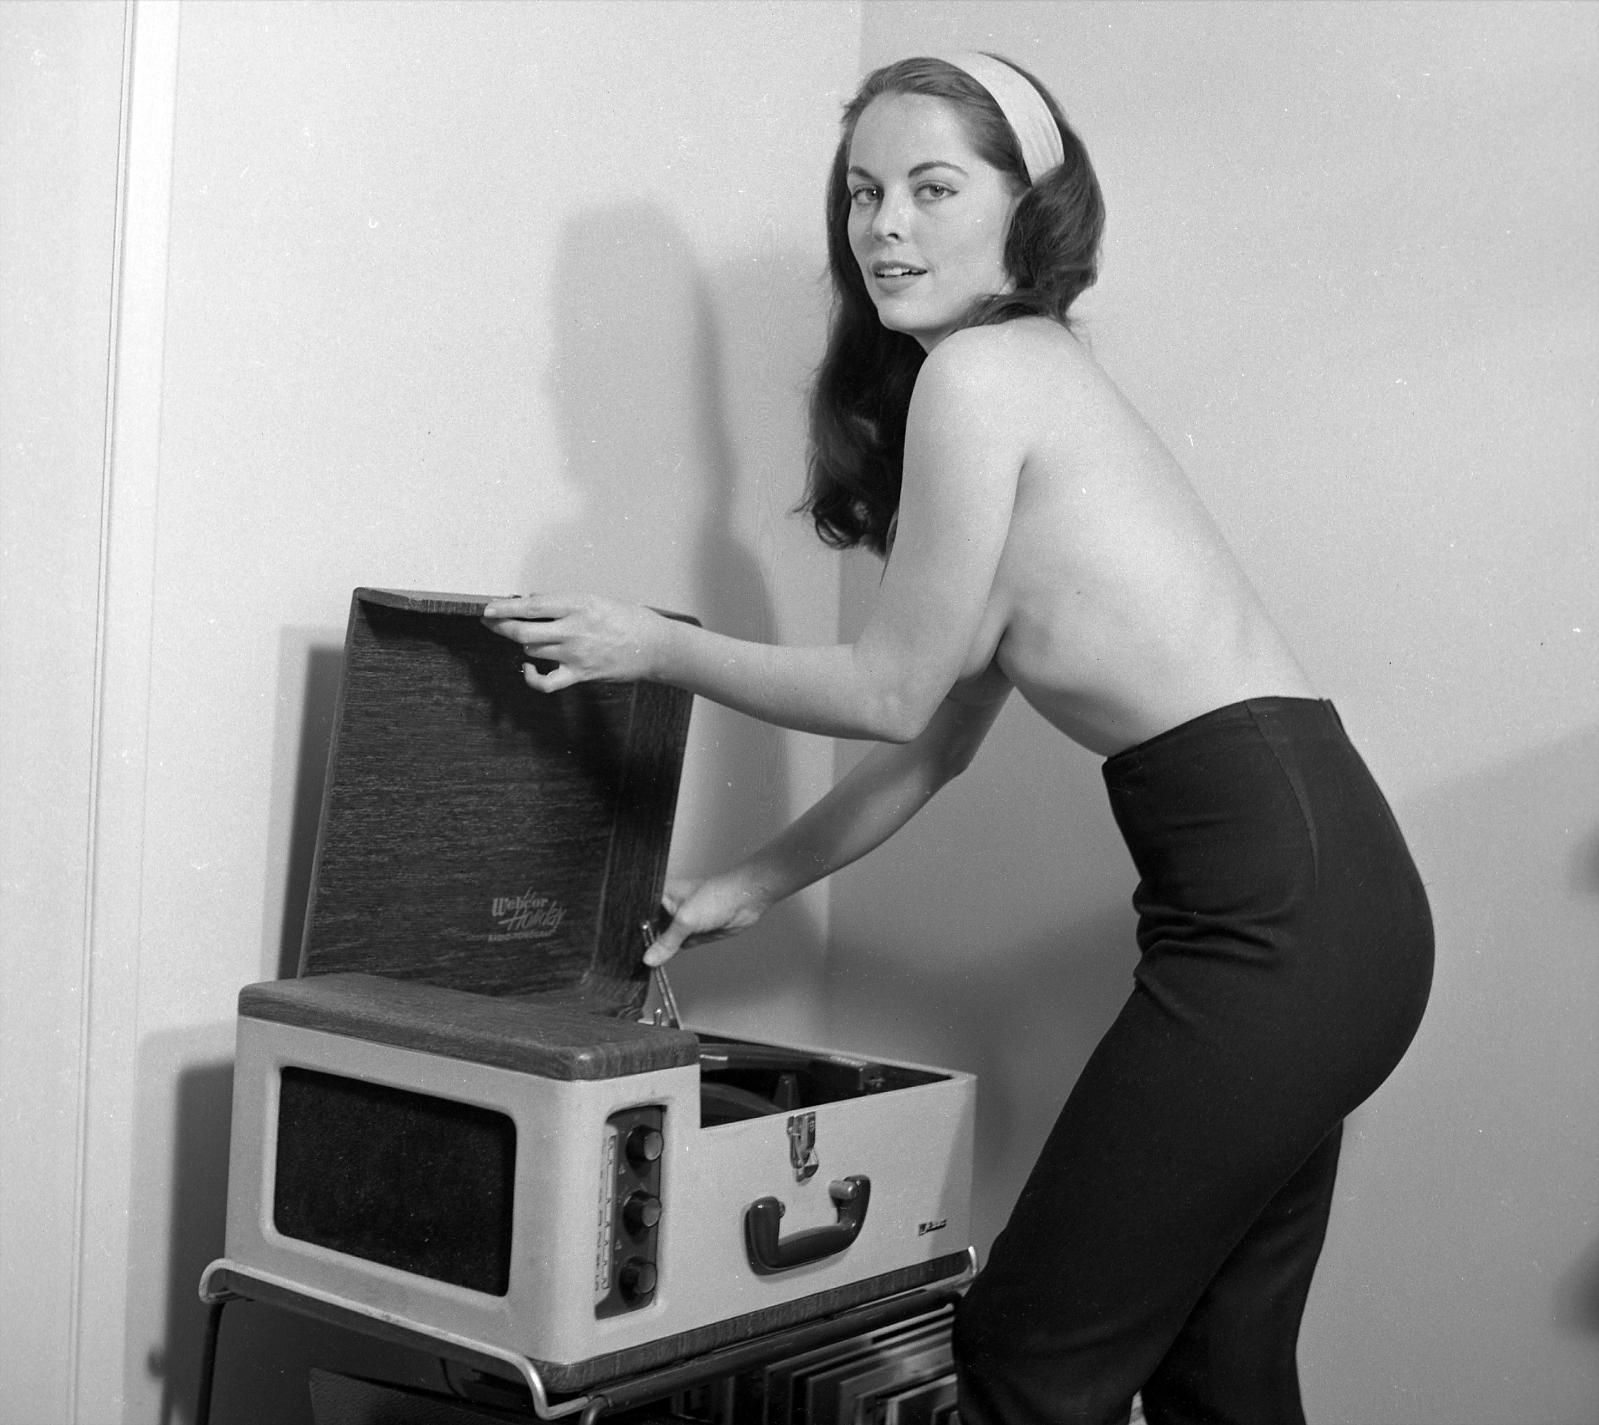 vintage-ladies-and-records-31.jpg